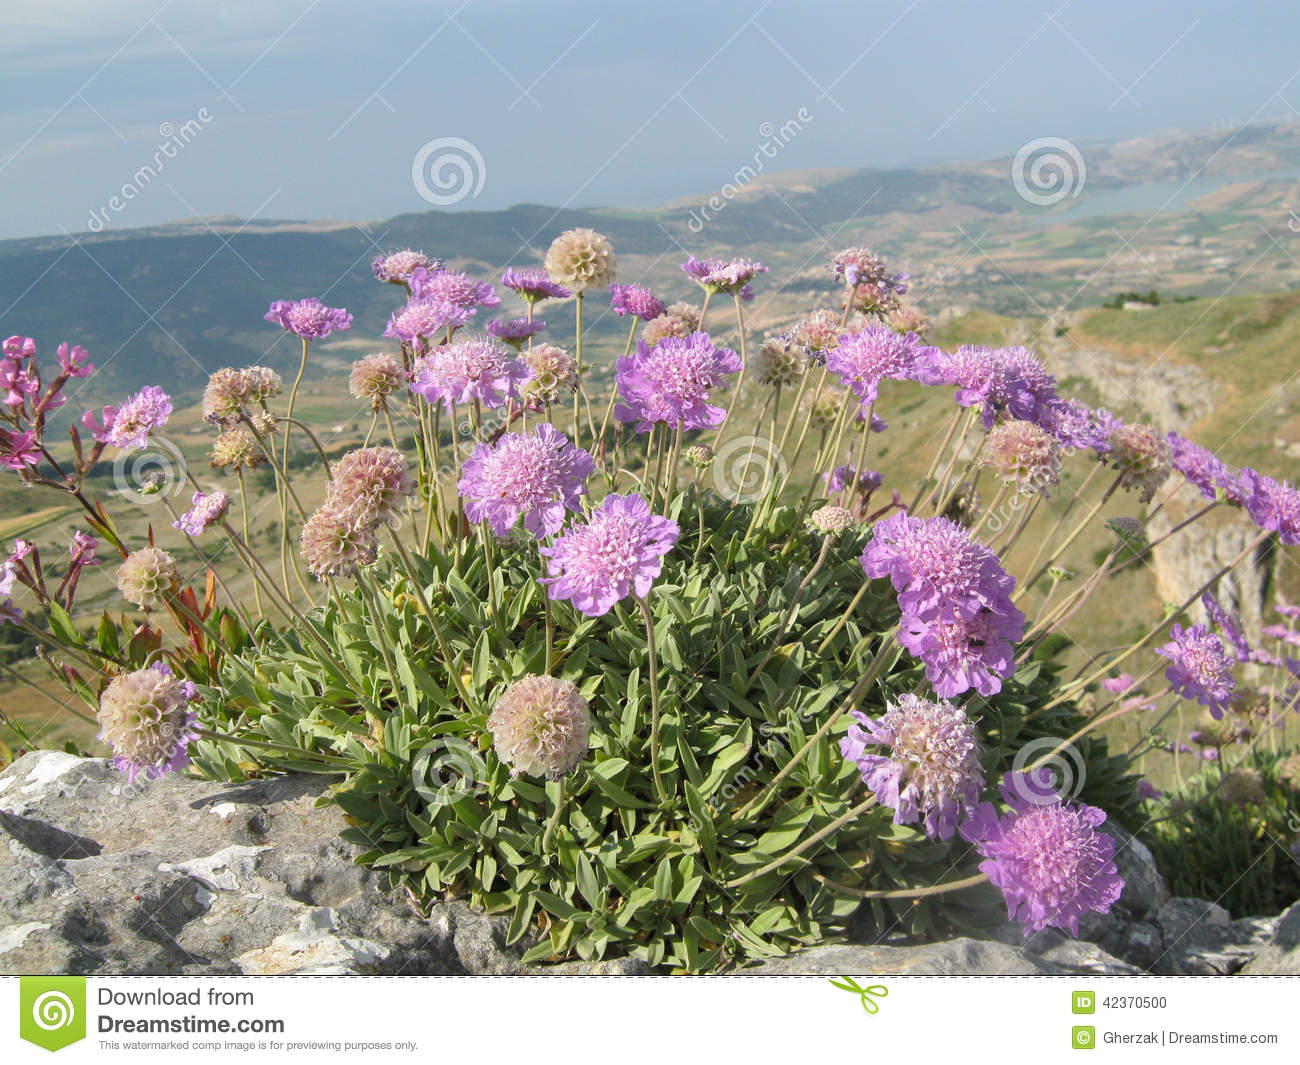 Scabiosa Cretica Stock Photo Image Of Botanical Environment 42370500